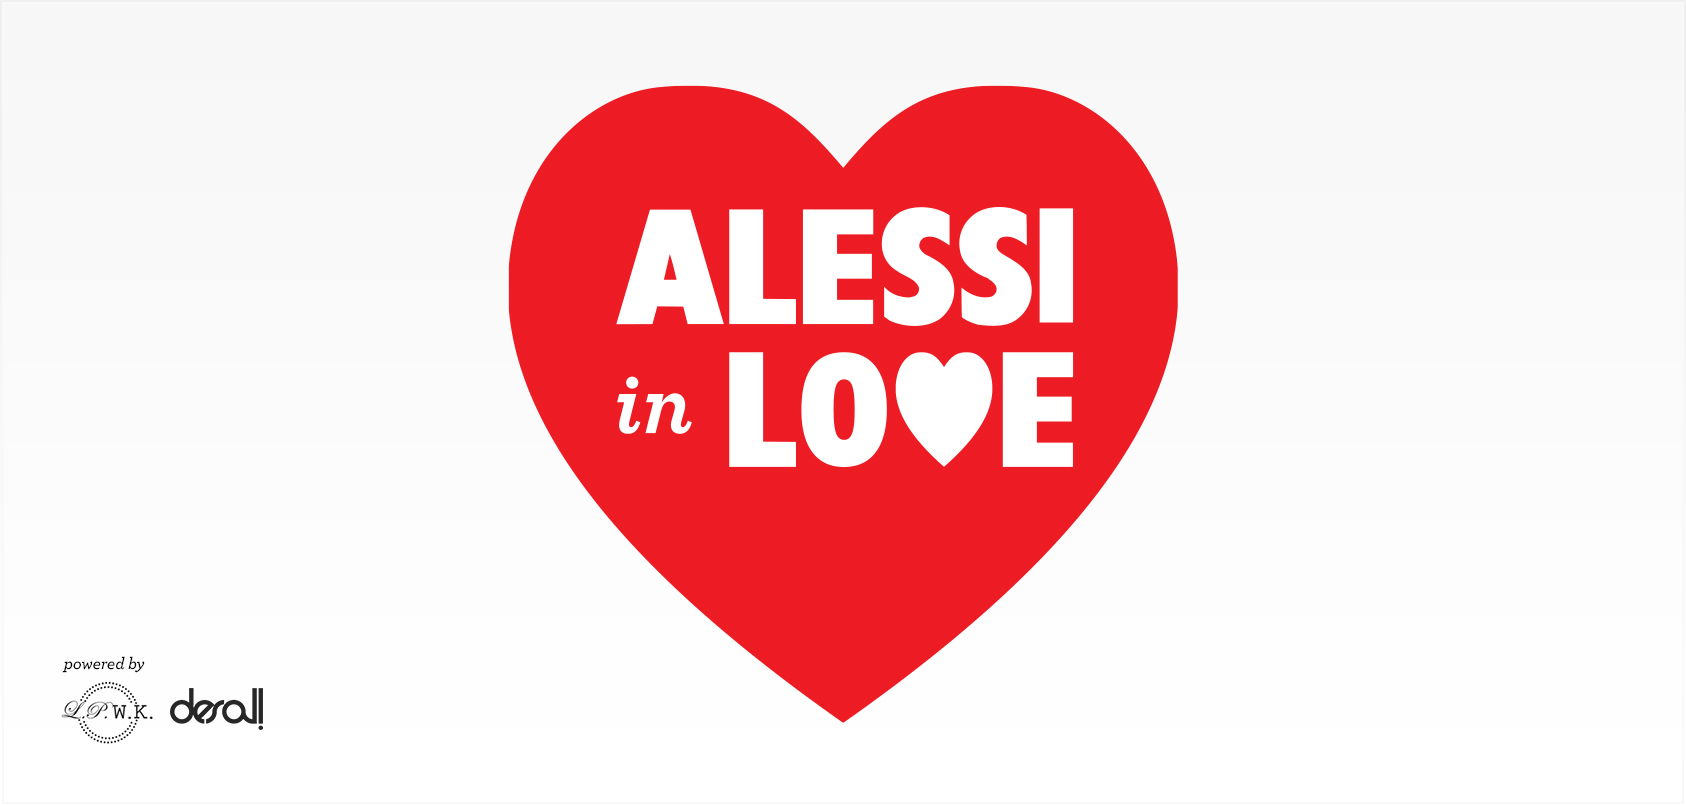 Love Alessi on alessi factory of italian design